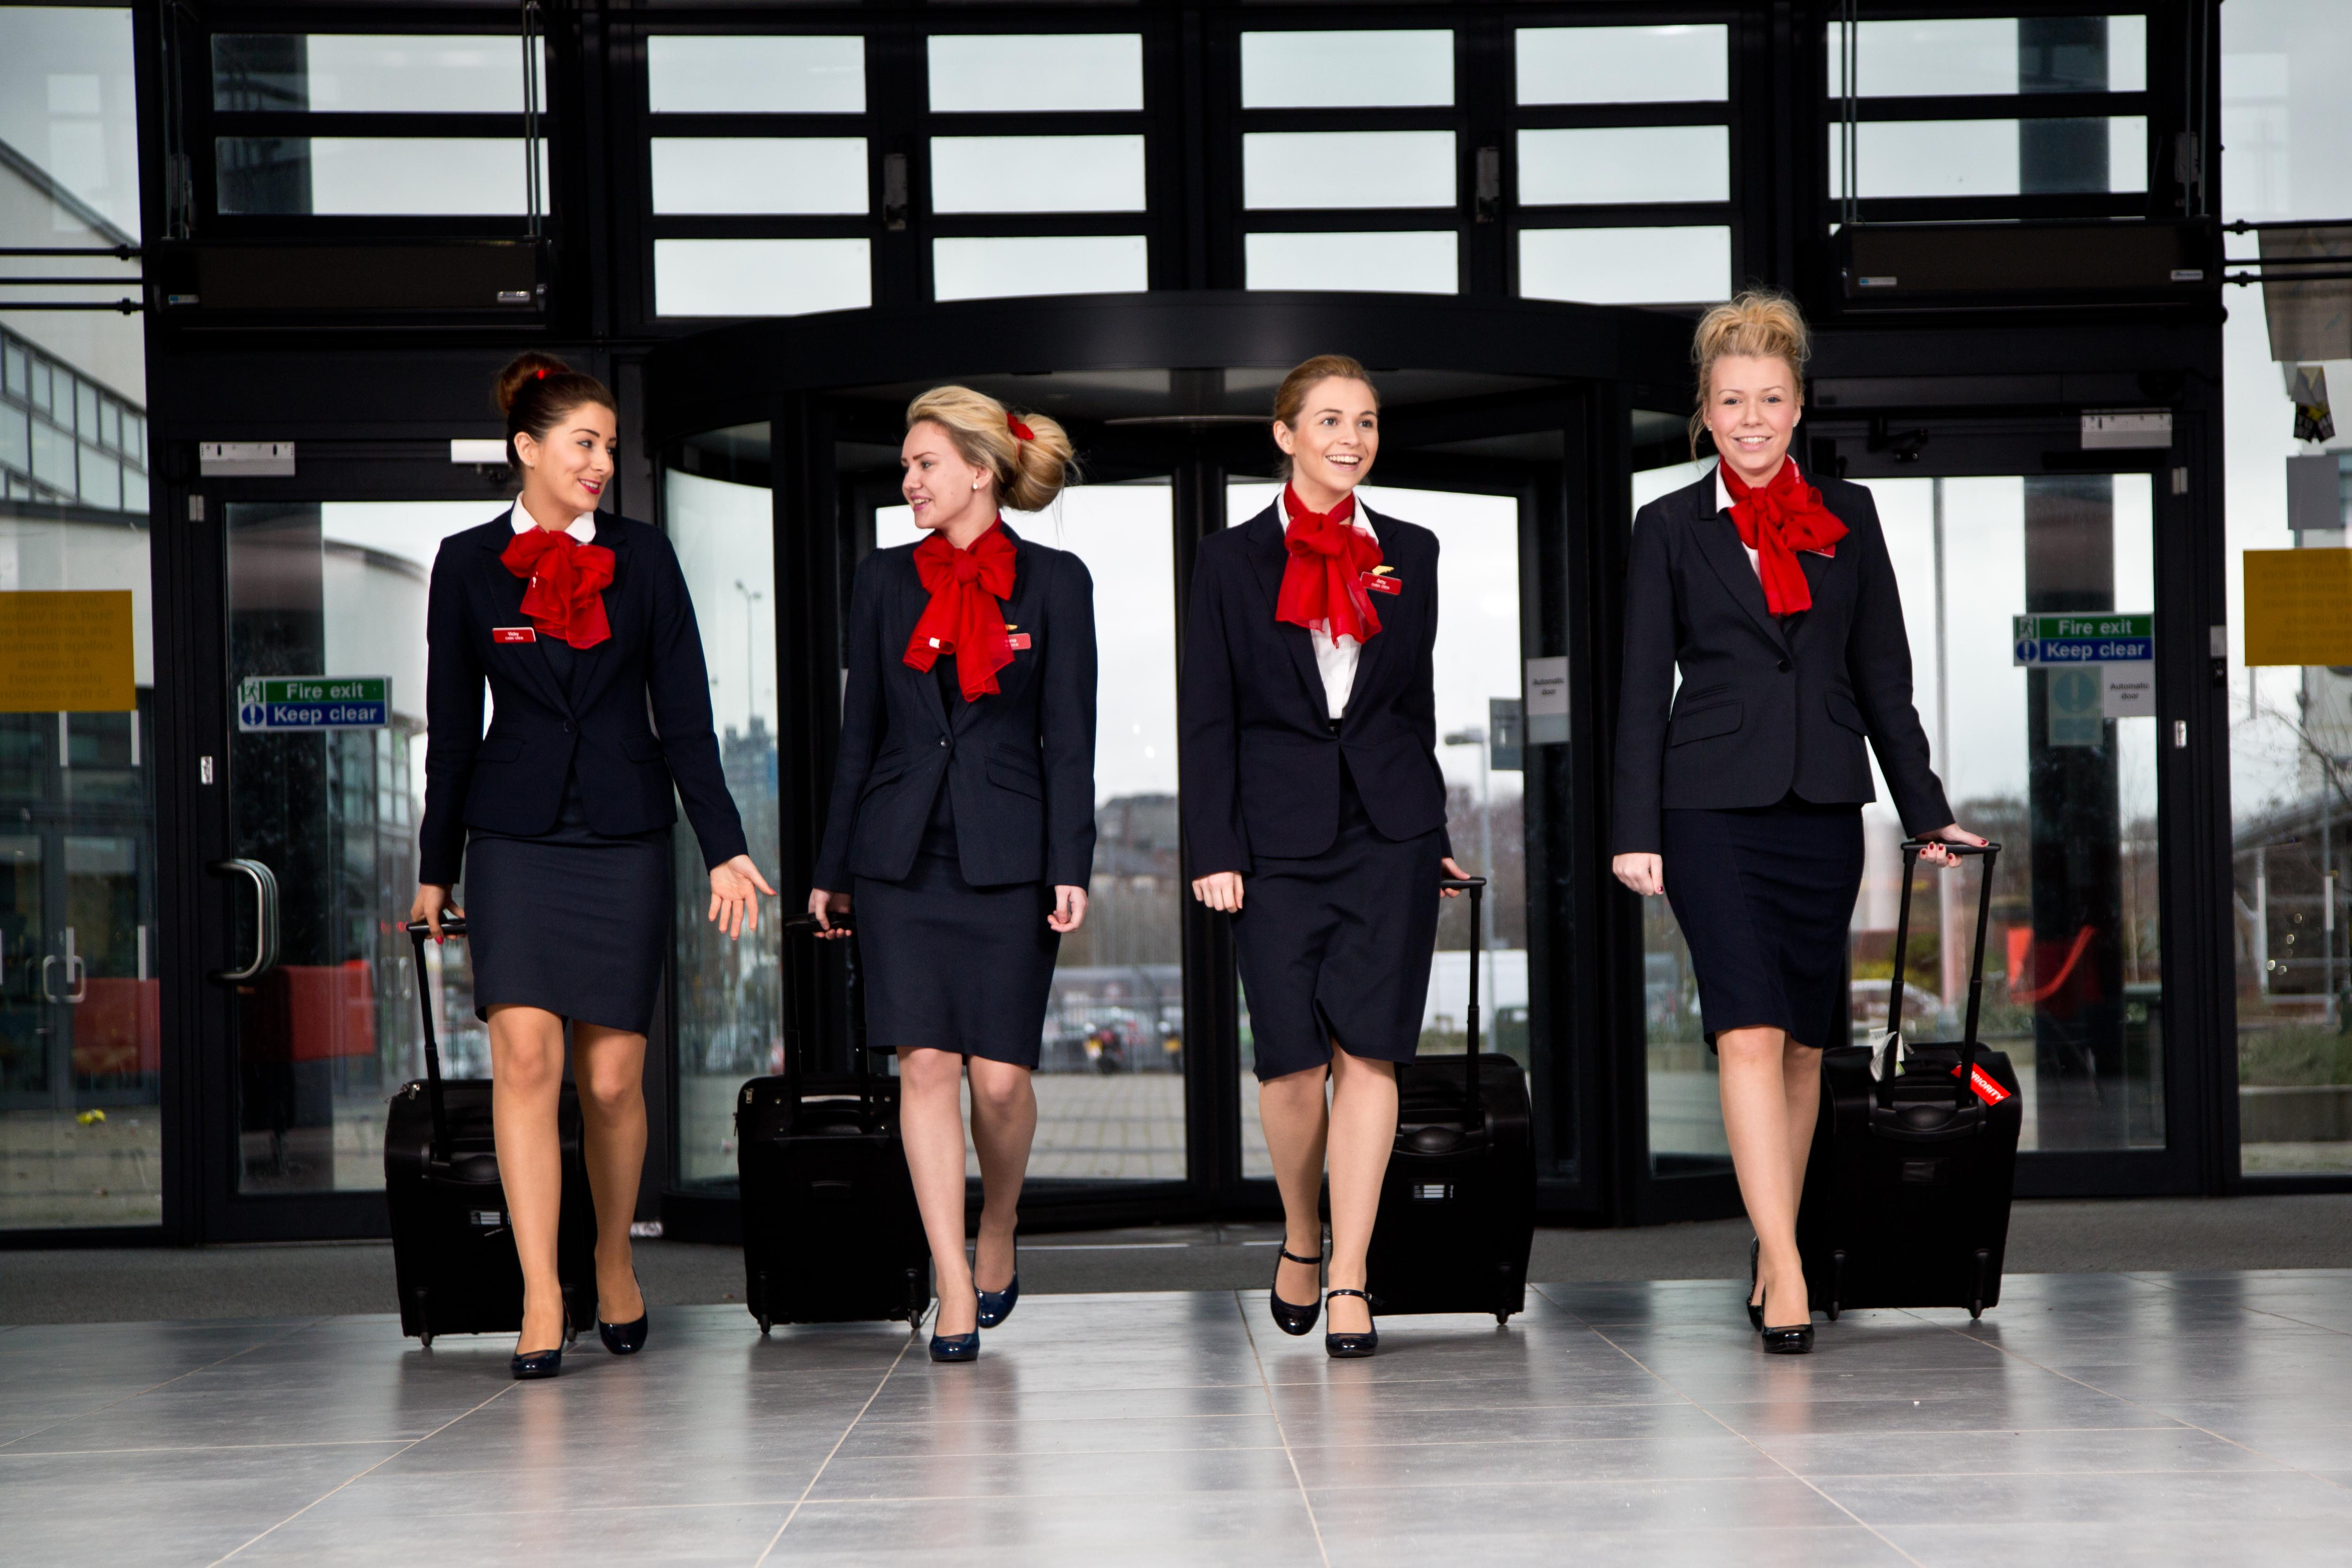 cabin-crew-and-airport-operations_26486218064_o.jpg